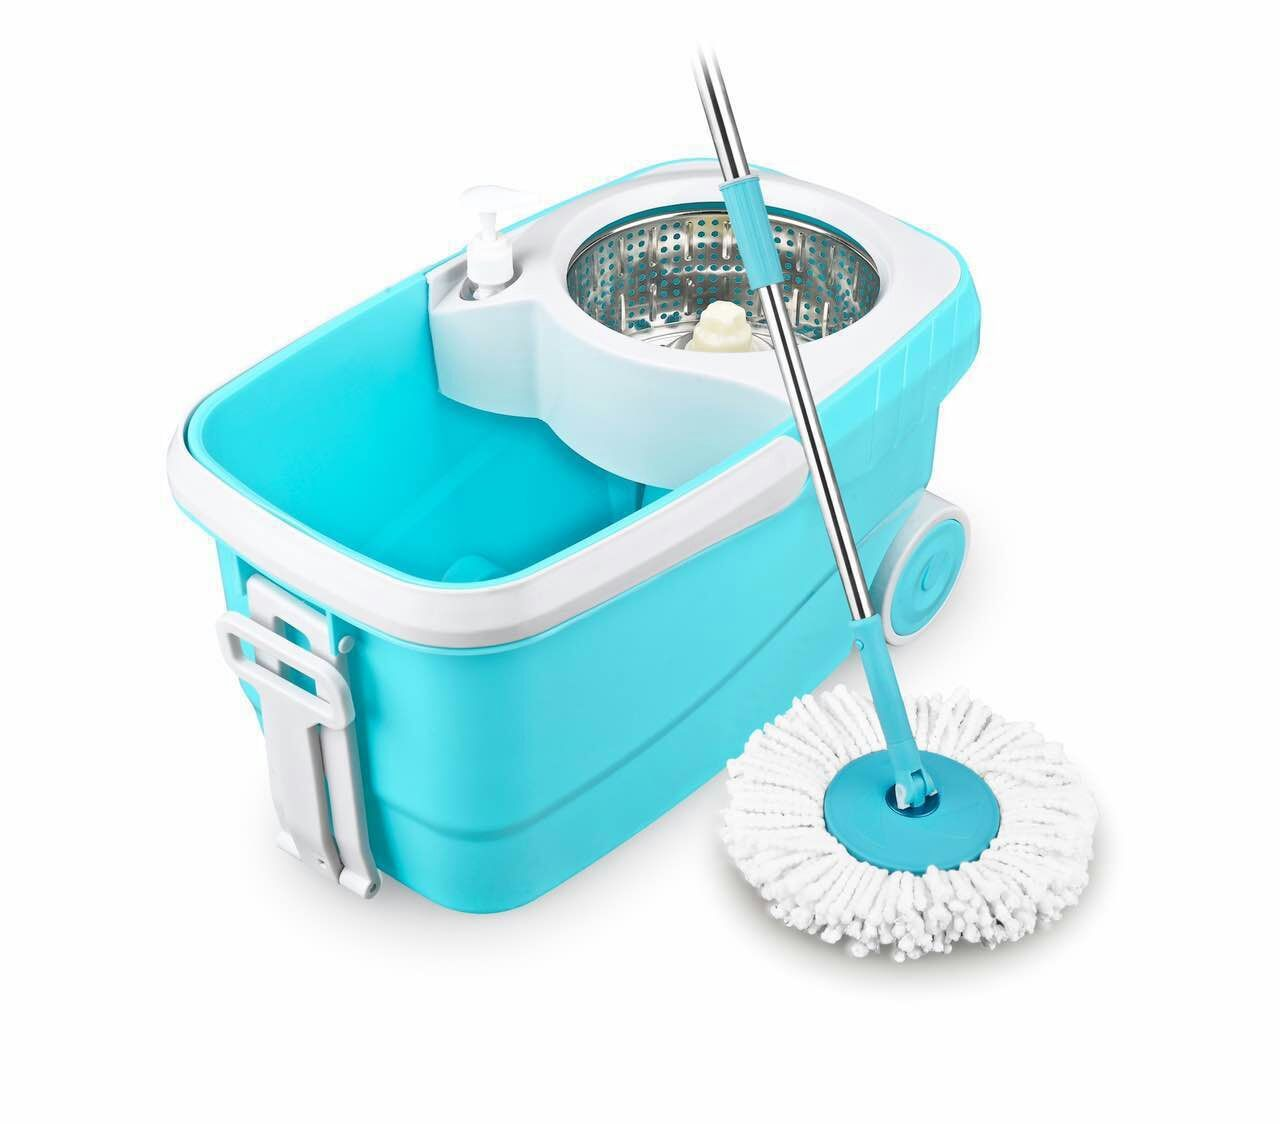 Mops Manufacturer And Supplier Of Mops In Delhi Lekhu Nagar Shagun Cleaning Company Is An India Based Manufacturer Sup Toilet Brush Cleaning Supplies Mops